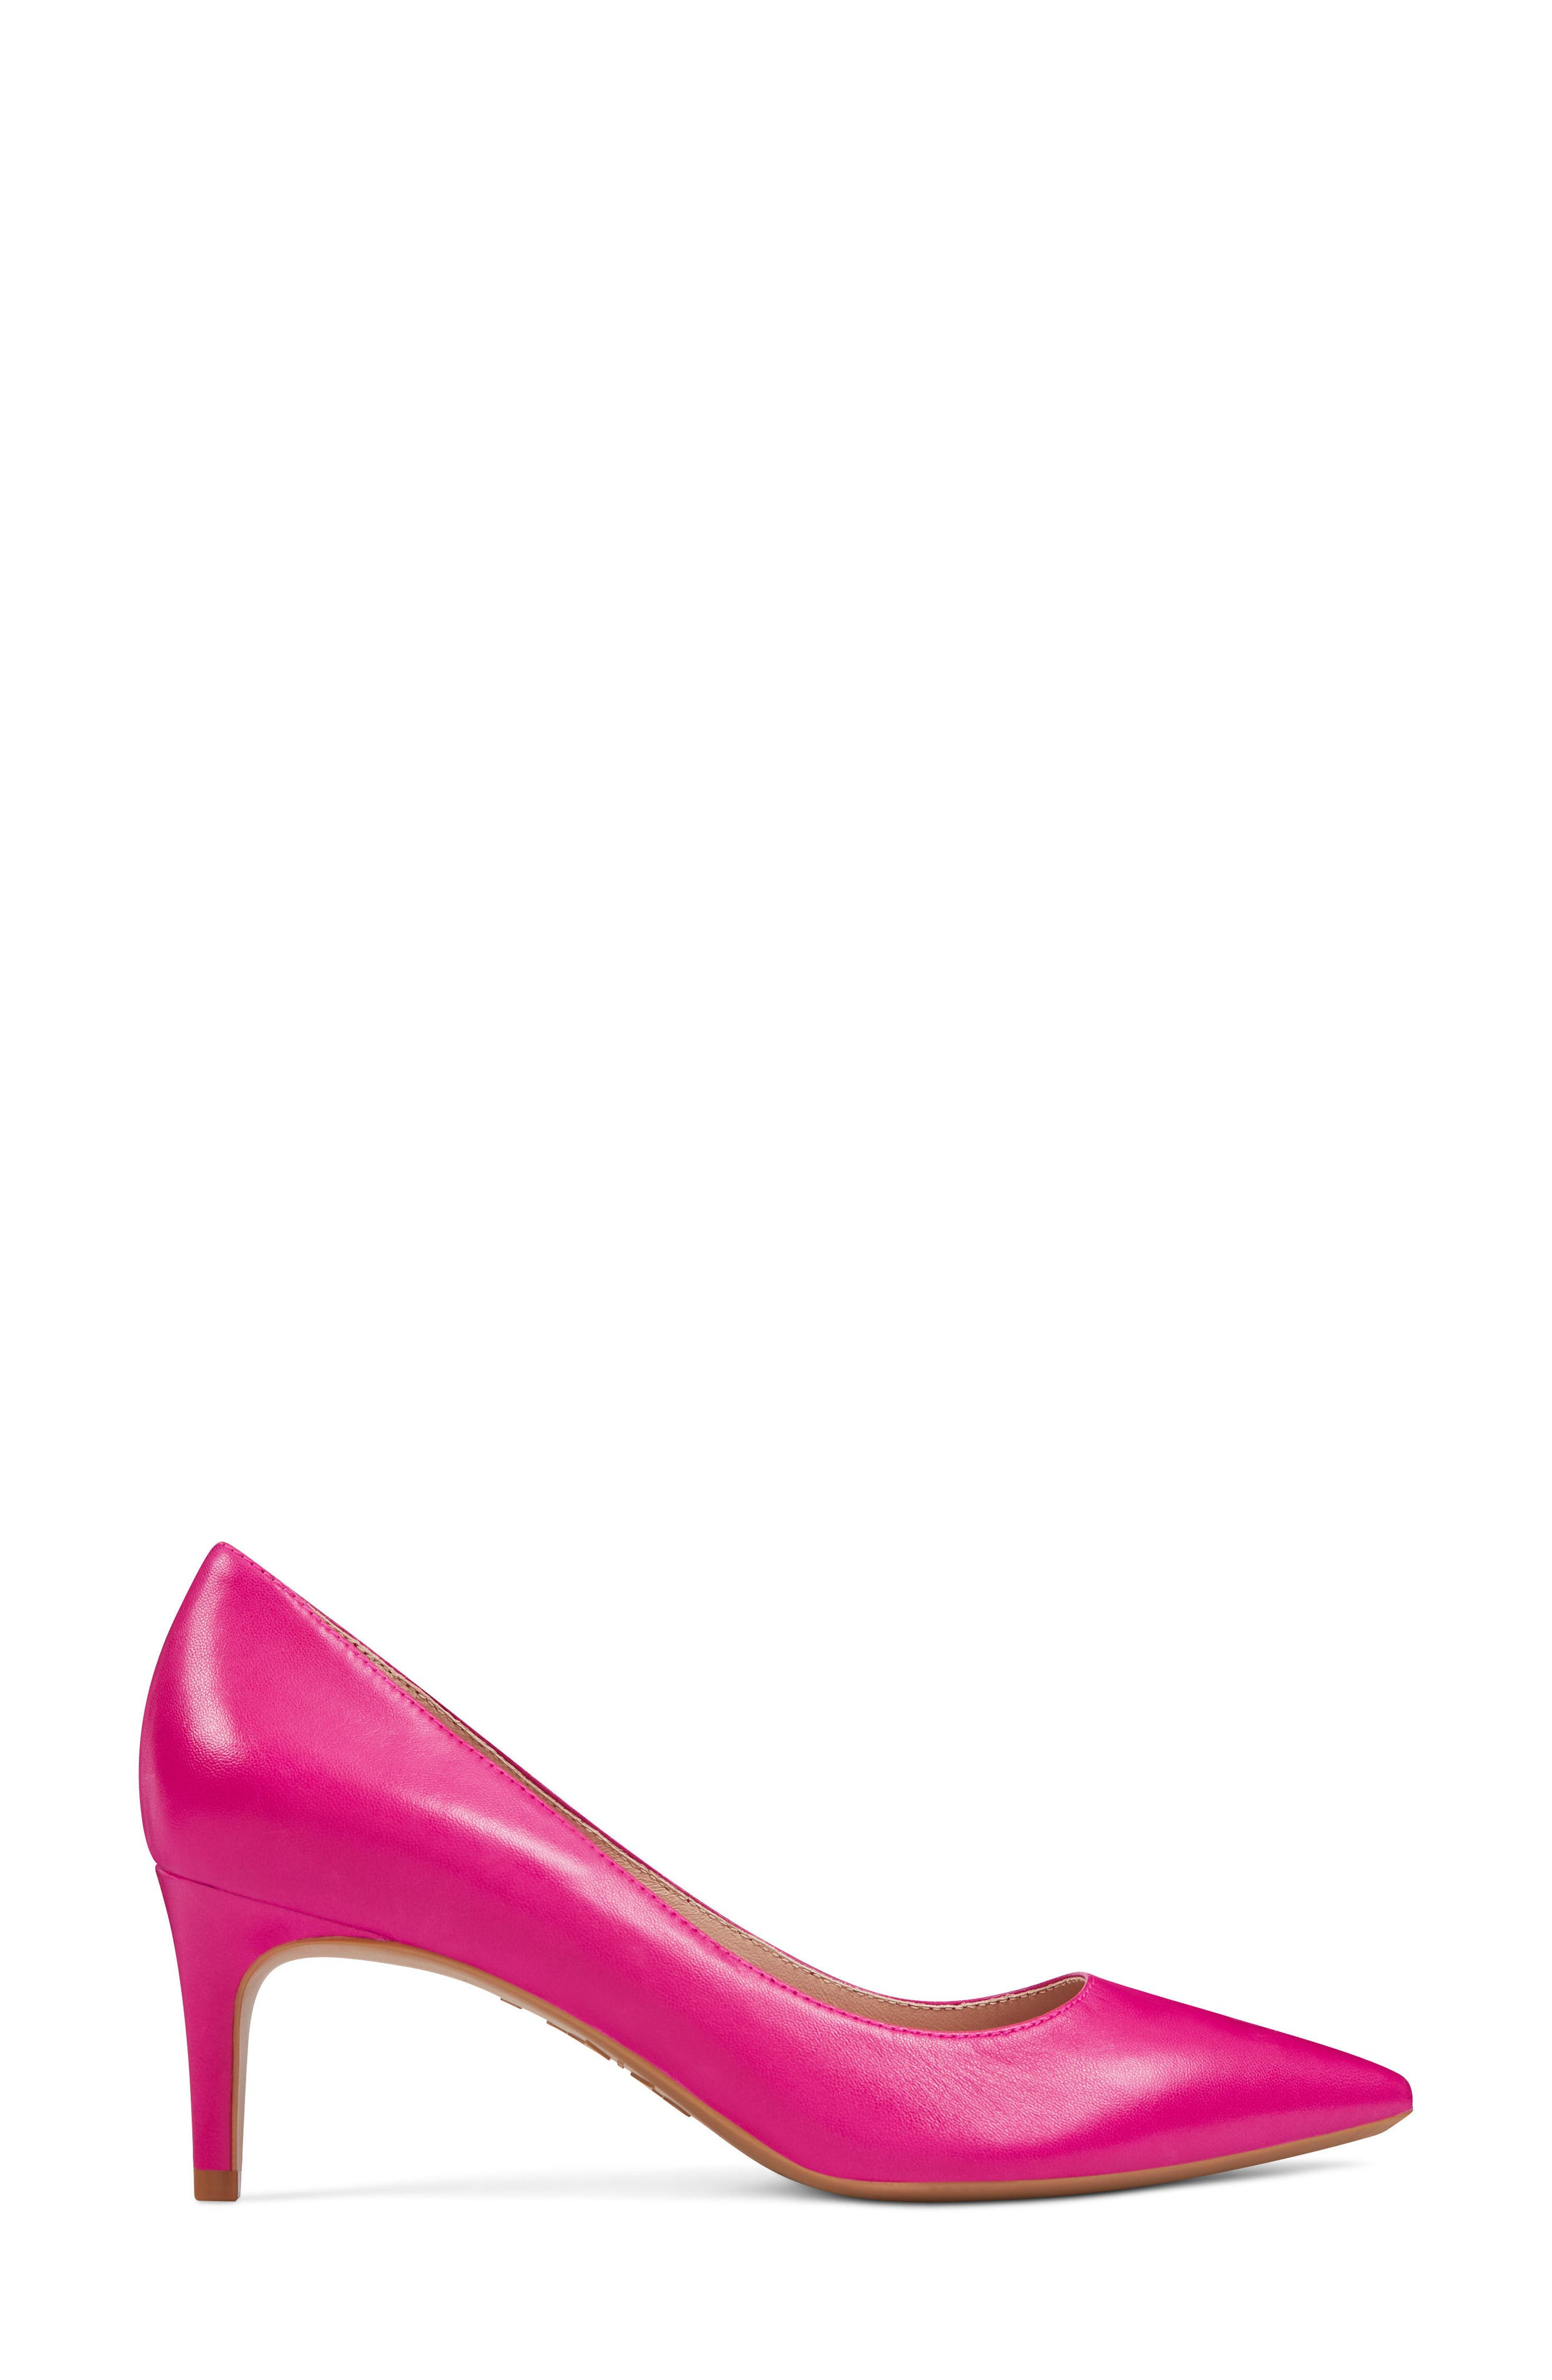 Soho Pointy Toe Pump,                             Alternate thumbnail 21, color,